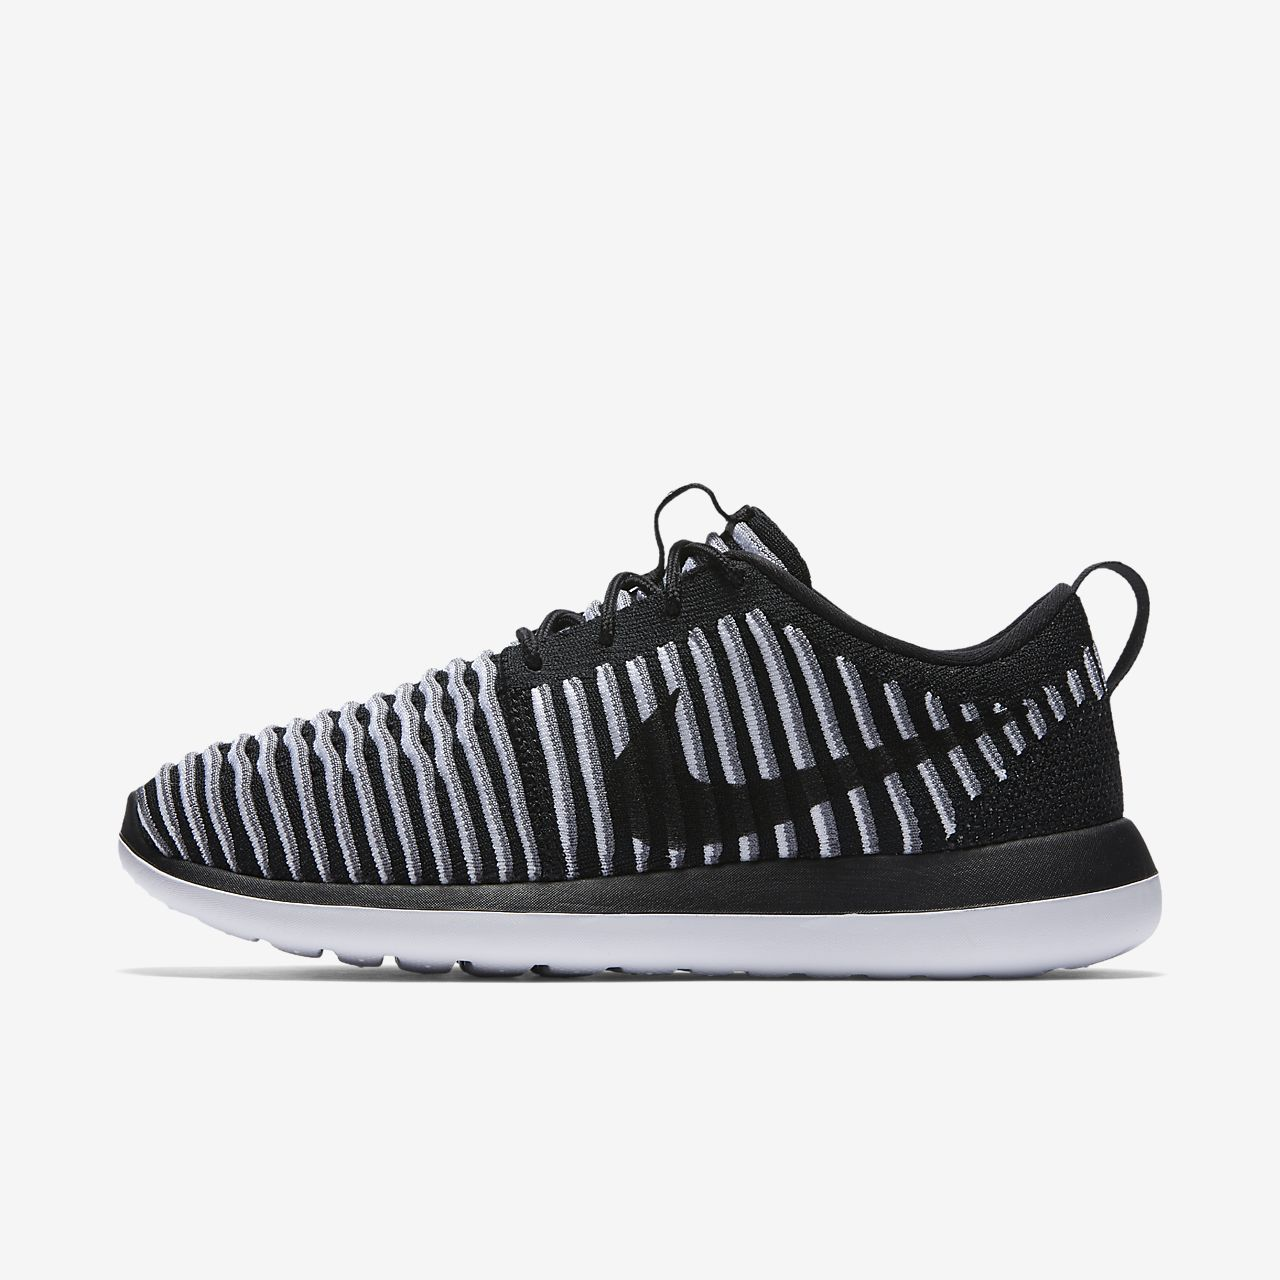 Chaussure Pour Nike Roshe Two Flyknit Pour Chaussure Ca 30ee0e